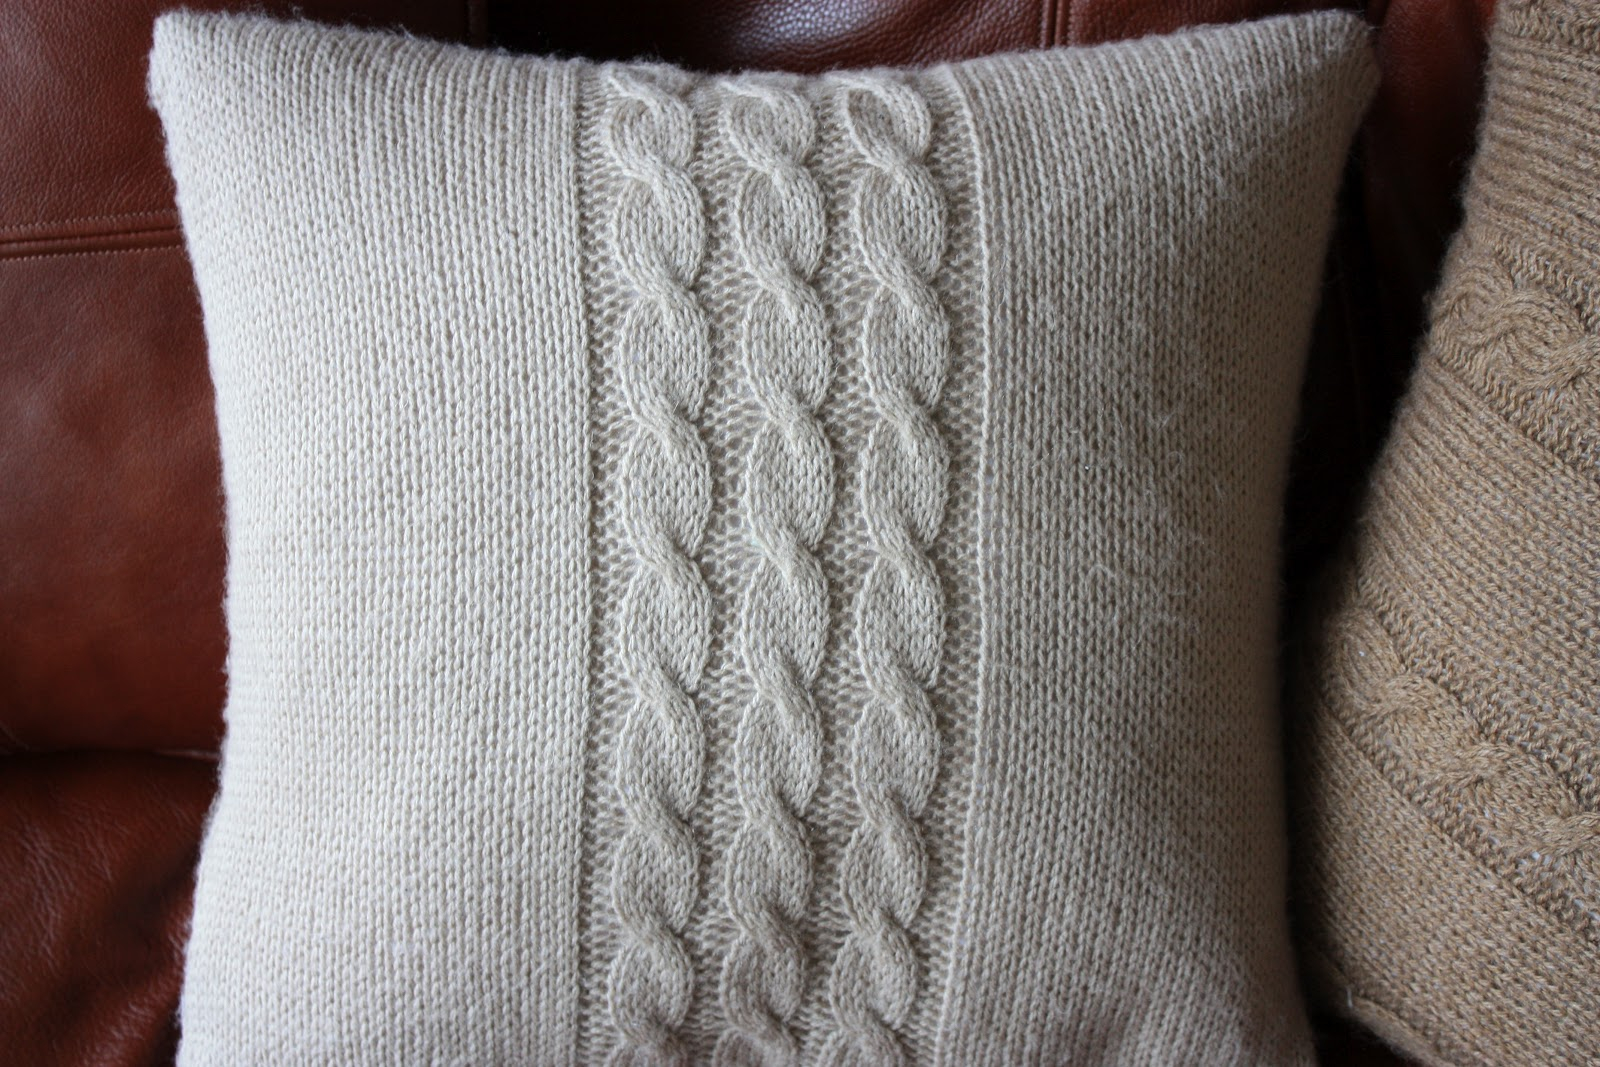 Knitting Pattern For Cushion Cover With Cables Natis Little Things Knitted Cushion Covers